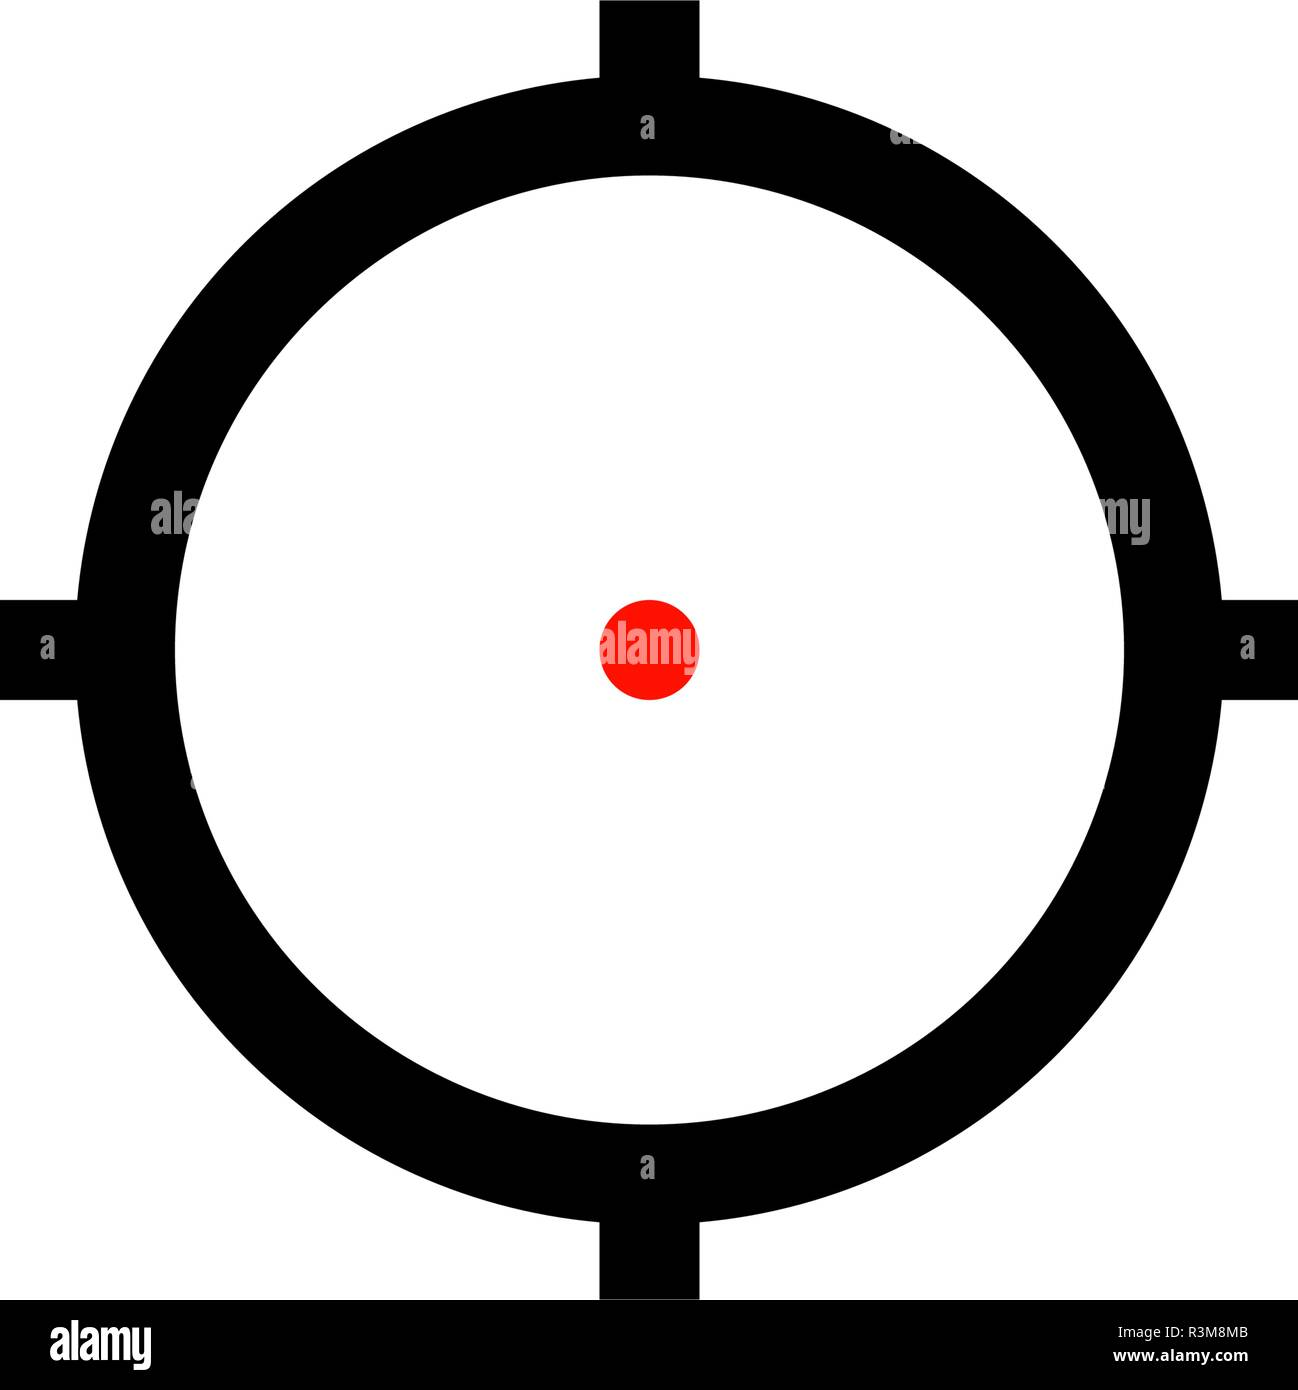 ar sniper target aim icon with red dot stock vector image art alamy https www alamy com ar sniper target aim icon with red dot image226024635 html